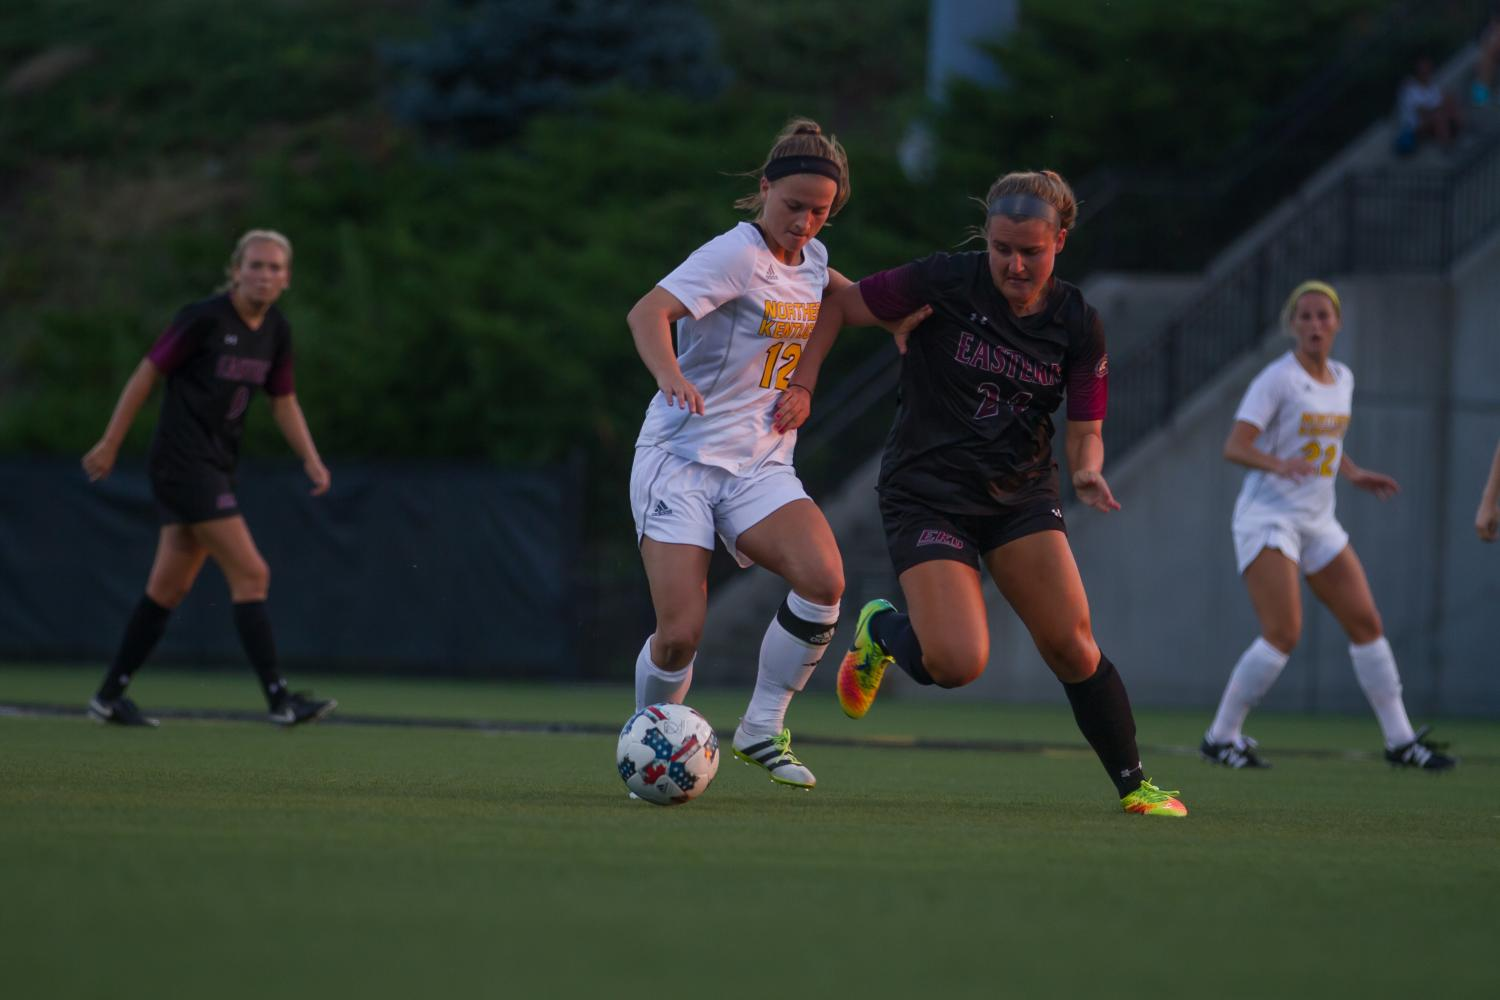 GALLERY: Frey's second half goal powers Norse to victory